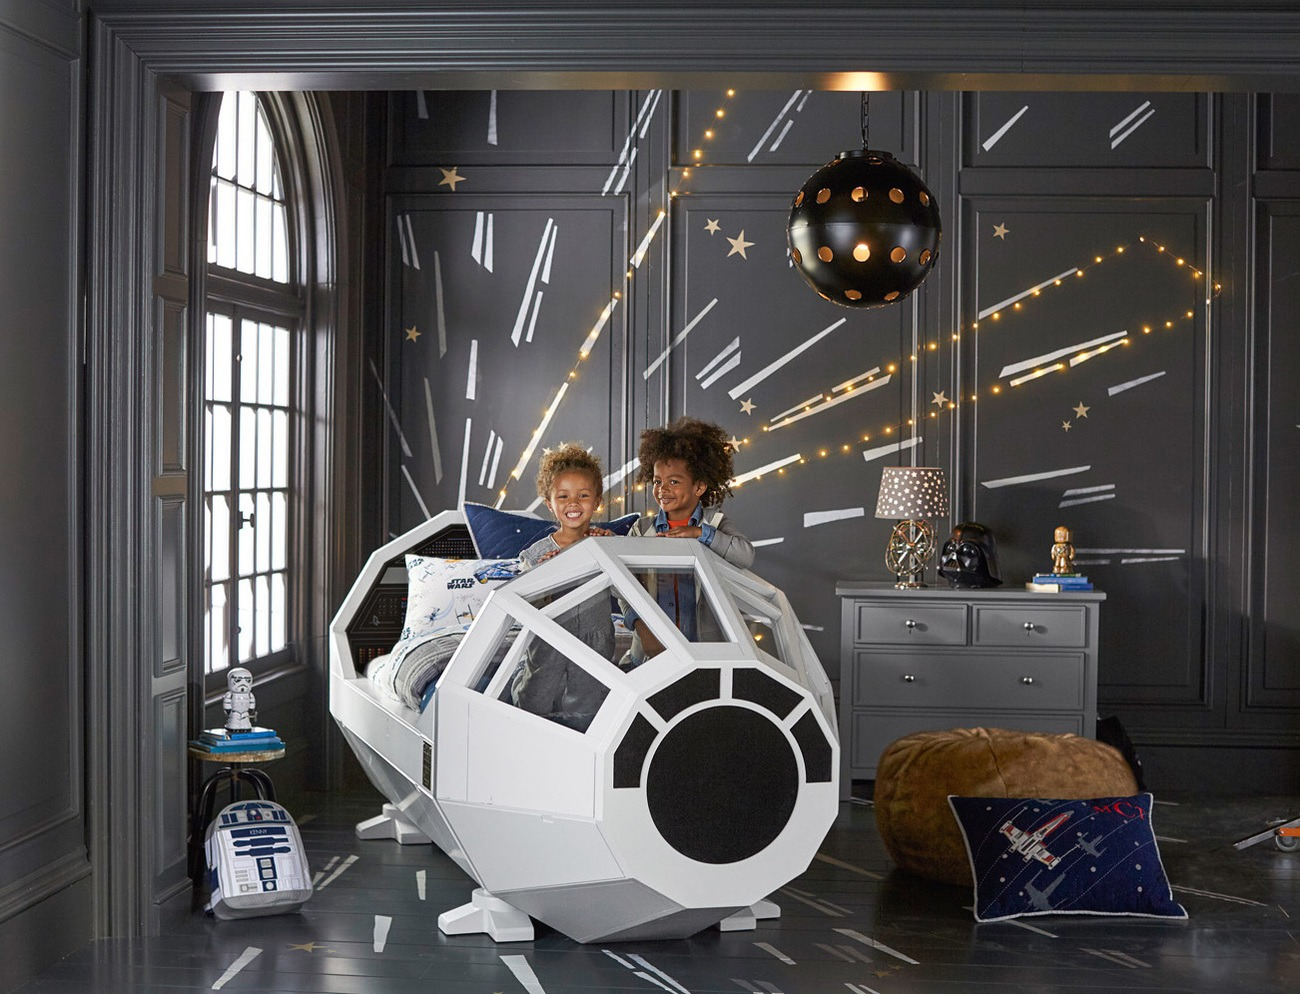 Star+Wars+Millennium+Falcon+Bed+By+Pottery+Barn